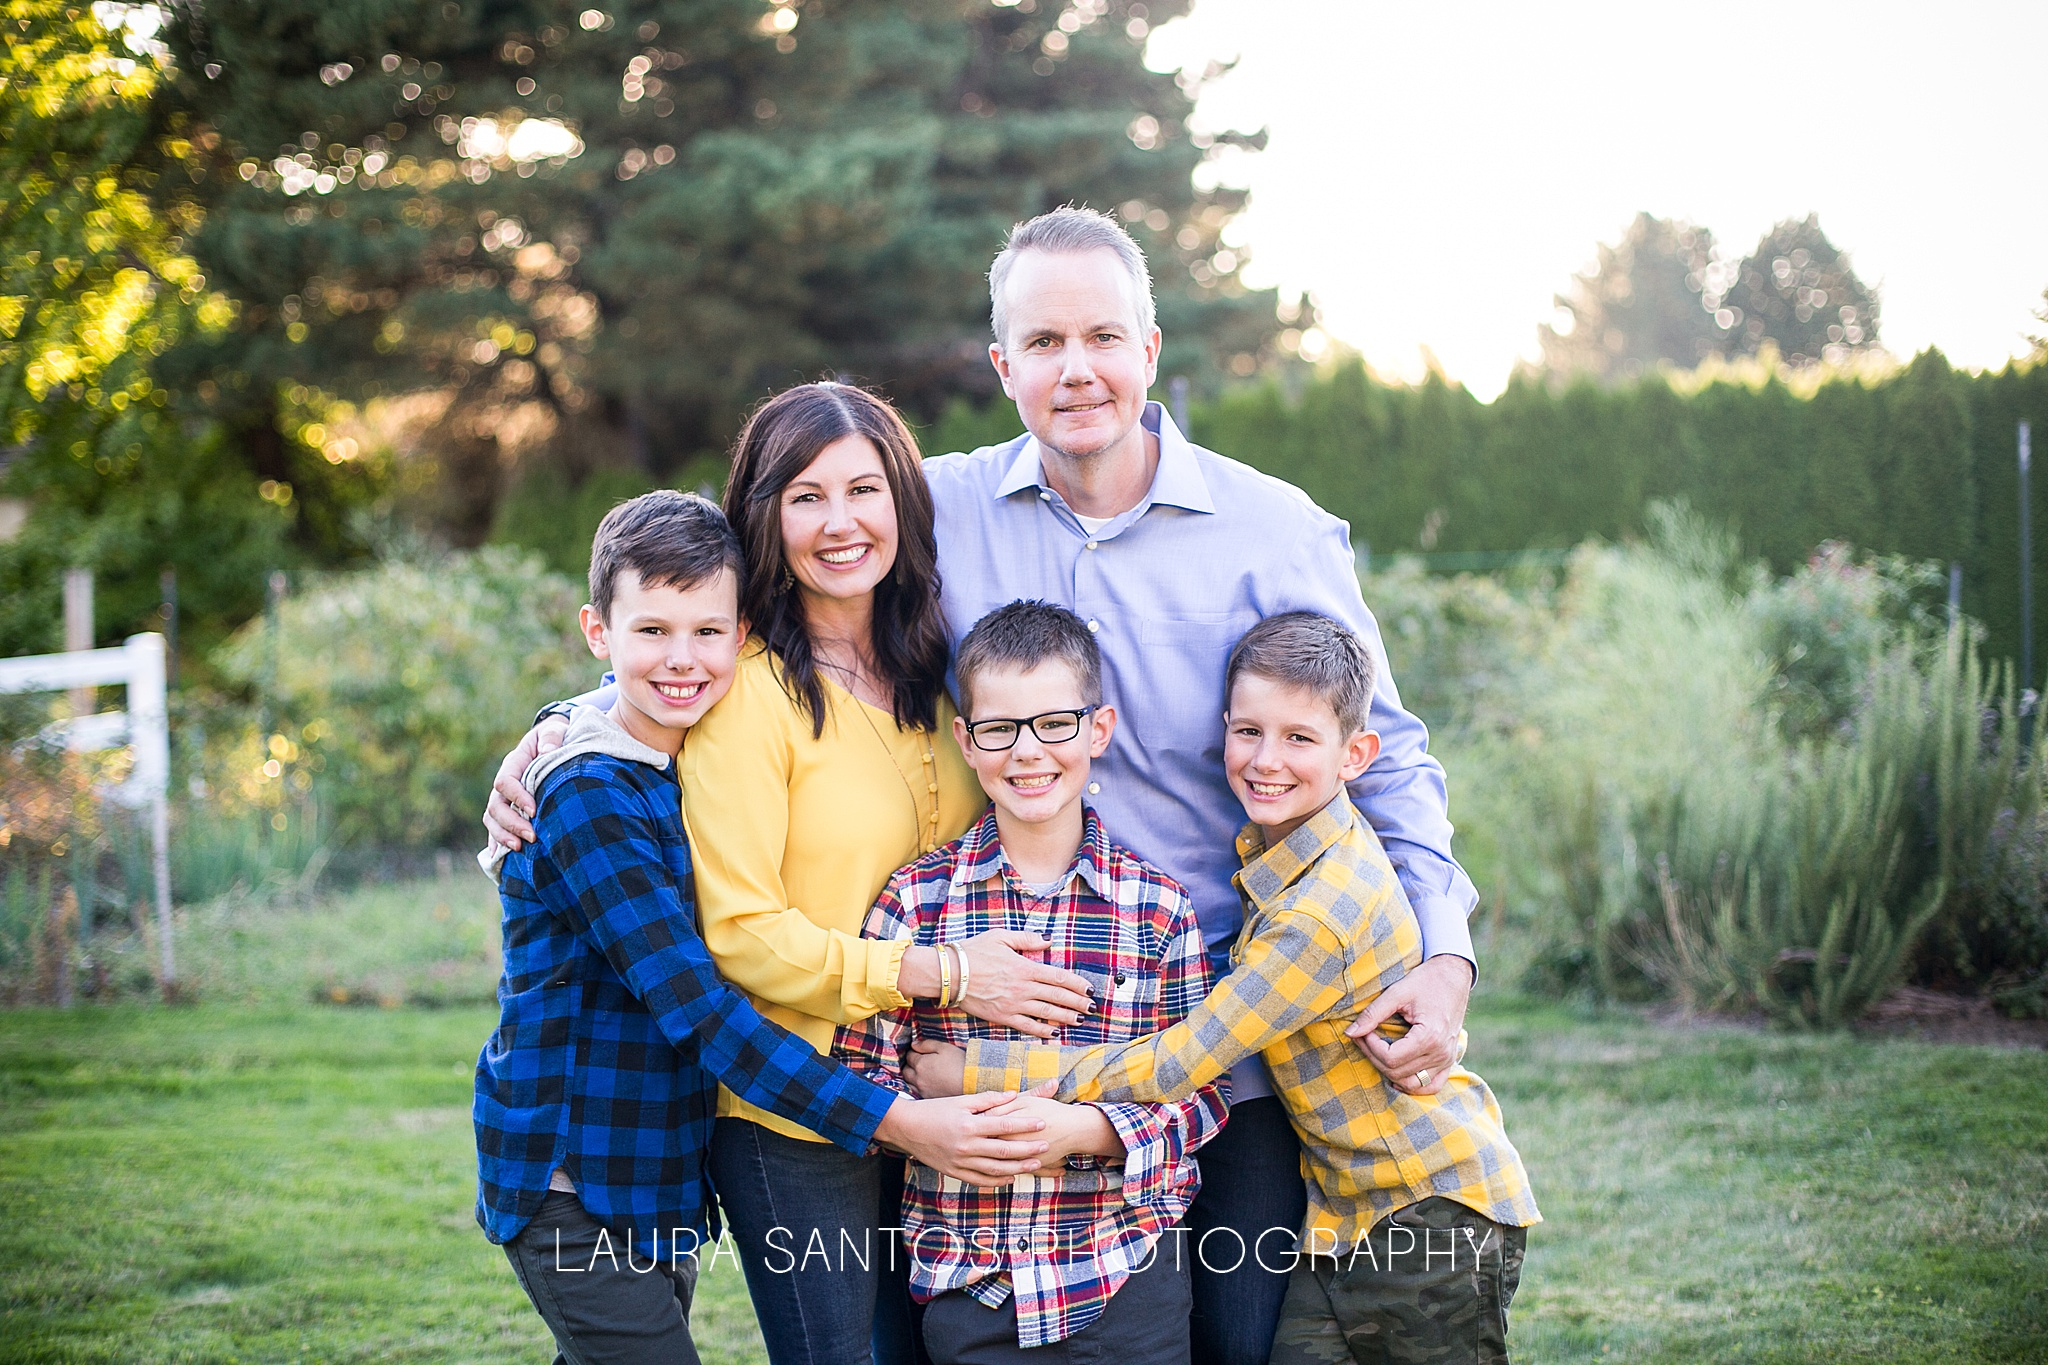 Laura Santos Photography Portland Oregon Family Photographer_0717.jpg